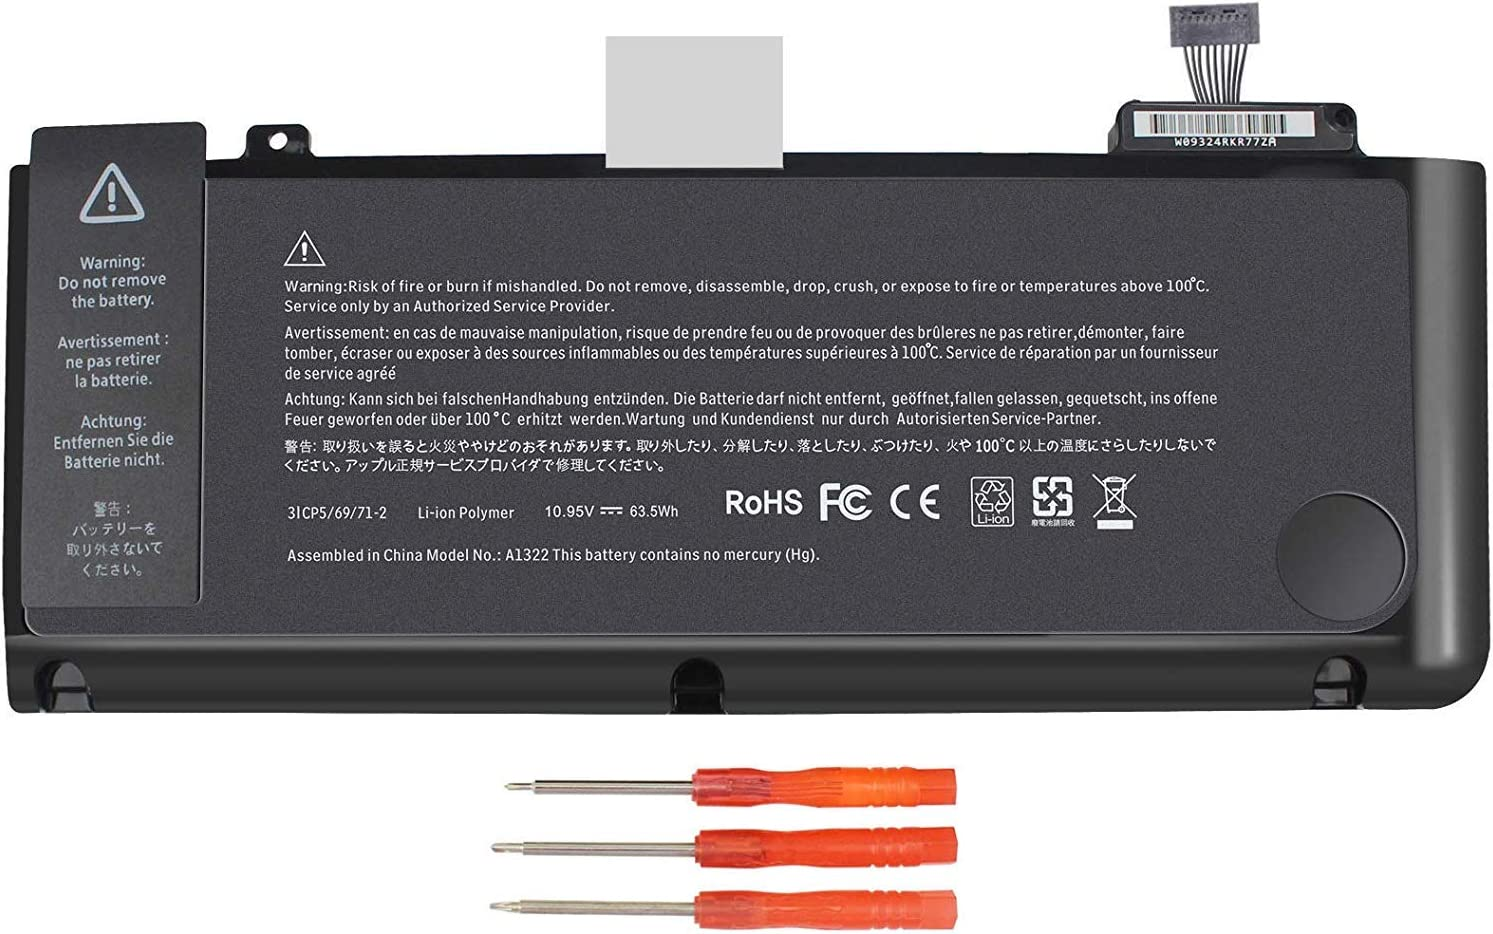 A1322 Battery for A1278 MacBook Pro 13 inch (2009 2010 2011 2012 Version) 661-5557 661-5229 MB990LL/A MB991LL/A MD313LL/A MC374LL/A MD101LL/A MD102LL/A MC700LL/A